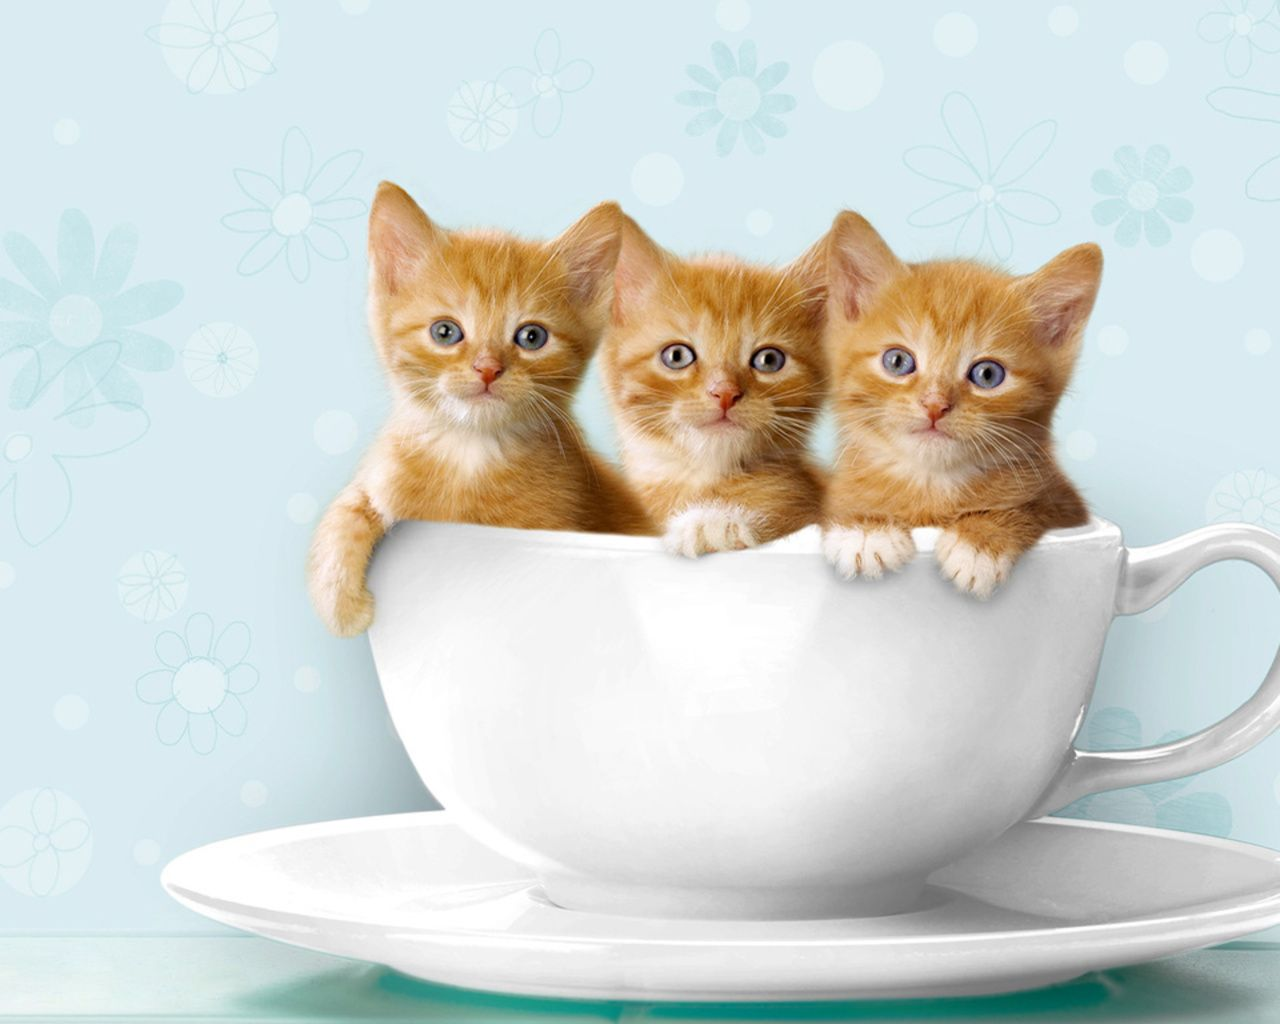 Animal Cat Video Porn teacup kittens. not really, it's just a really cup for